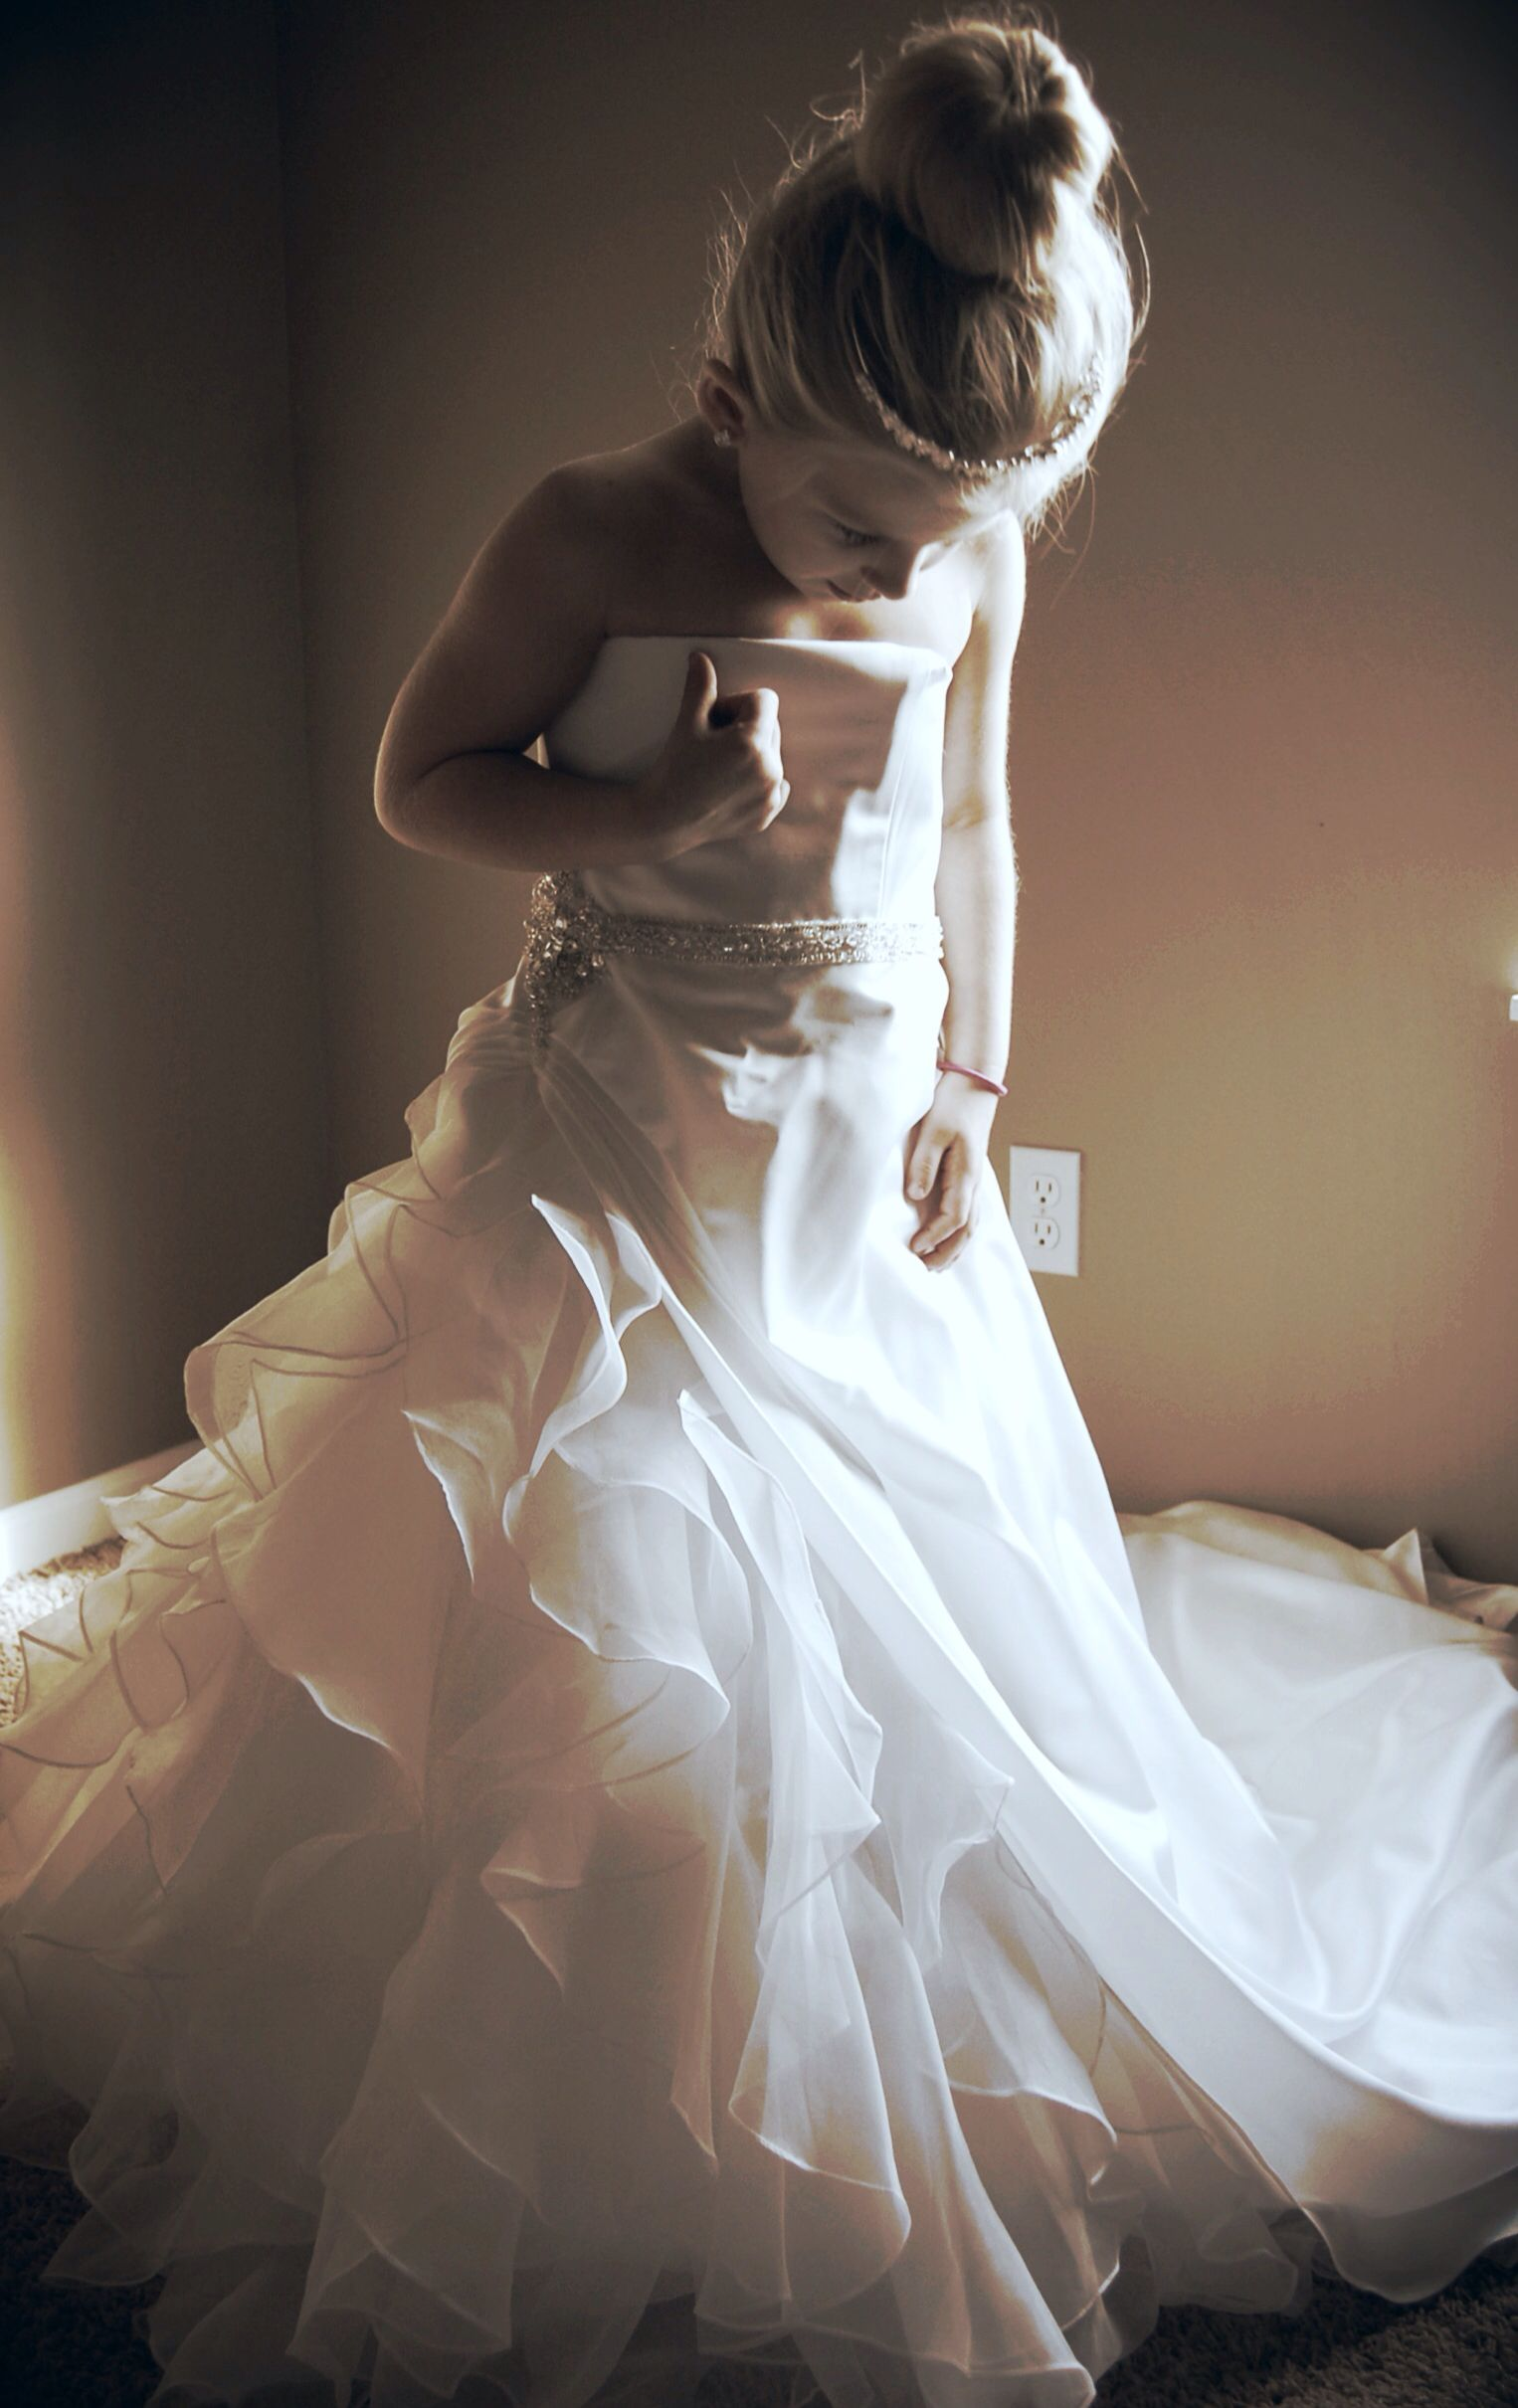 Take a photo of your daughter in your wedding dress then give to